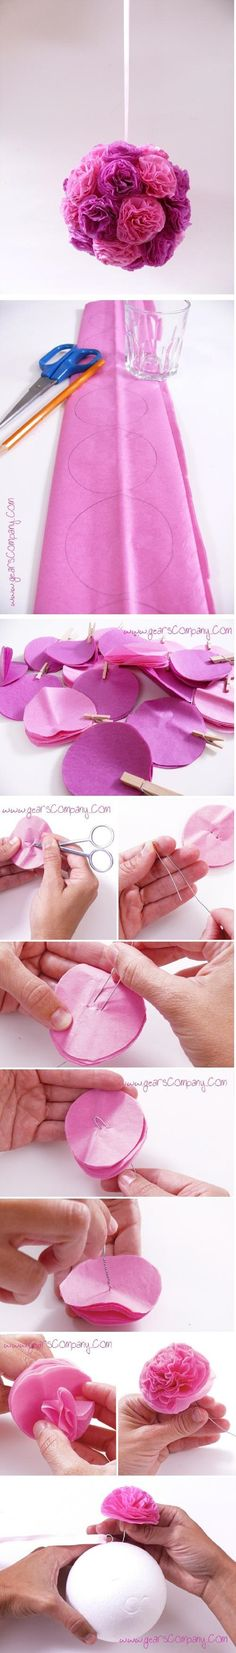 DIY Paper Flower Tutorial - 15 Whimsical DIY Party Decoration Tutorials | GleamItUp